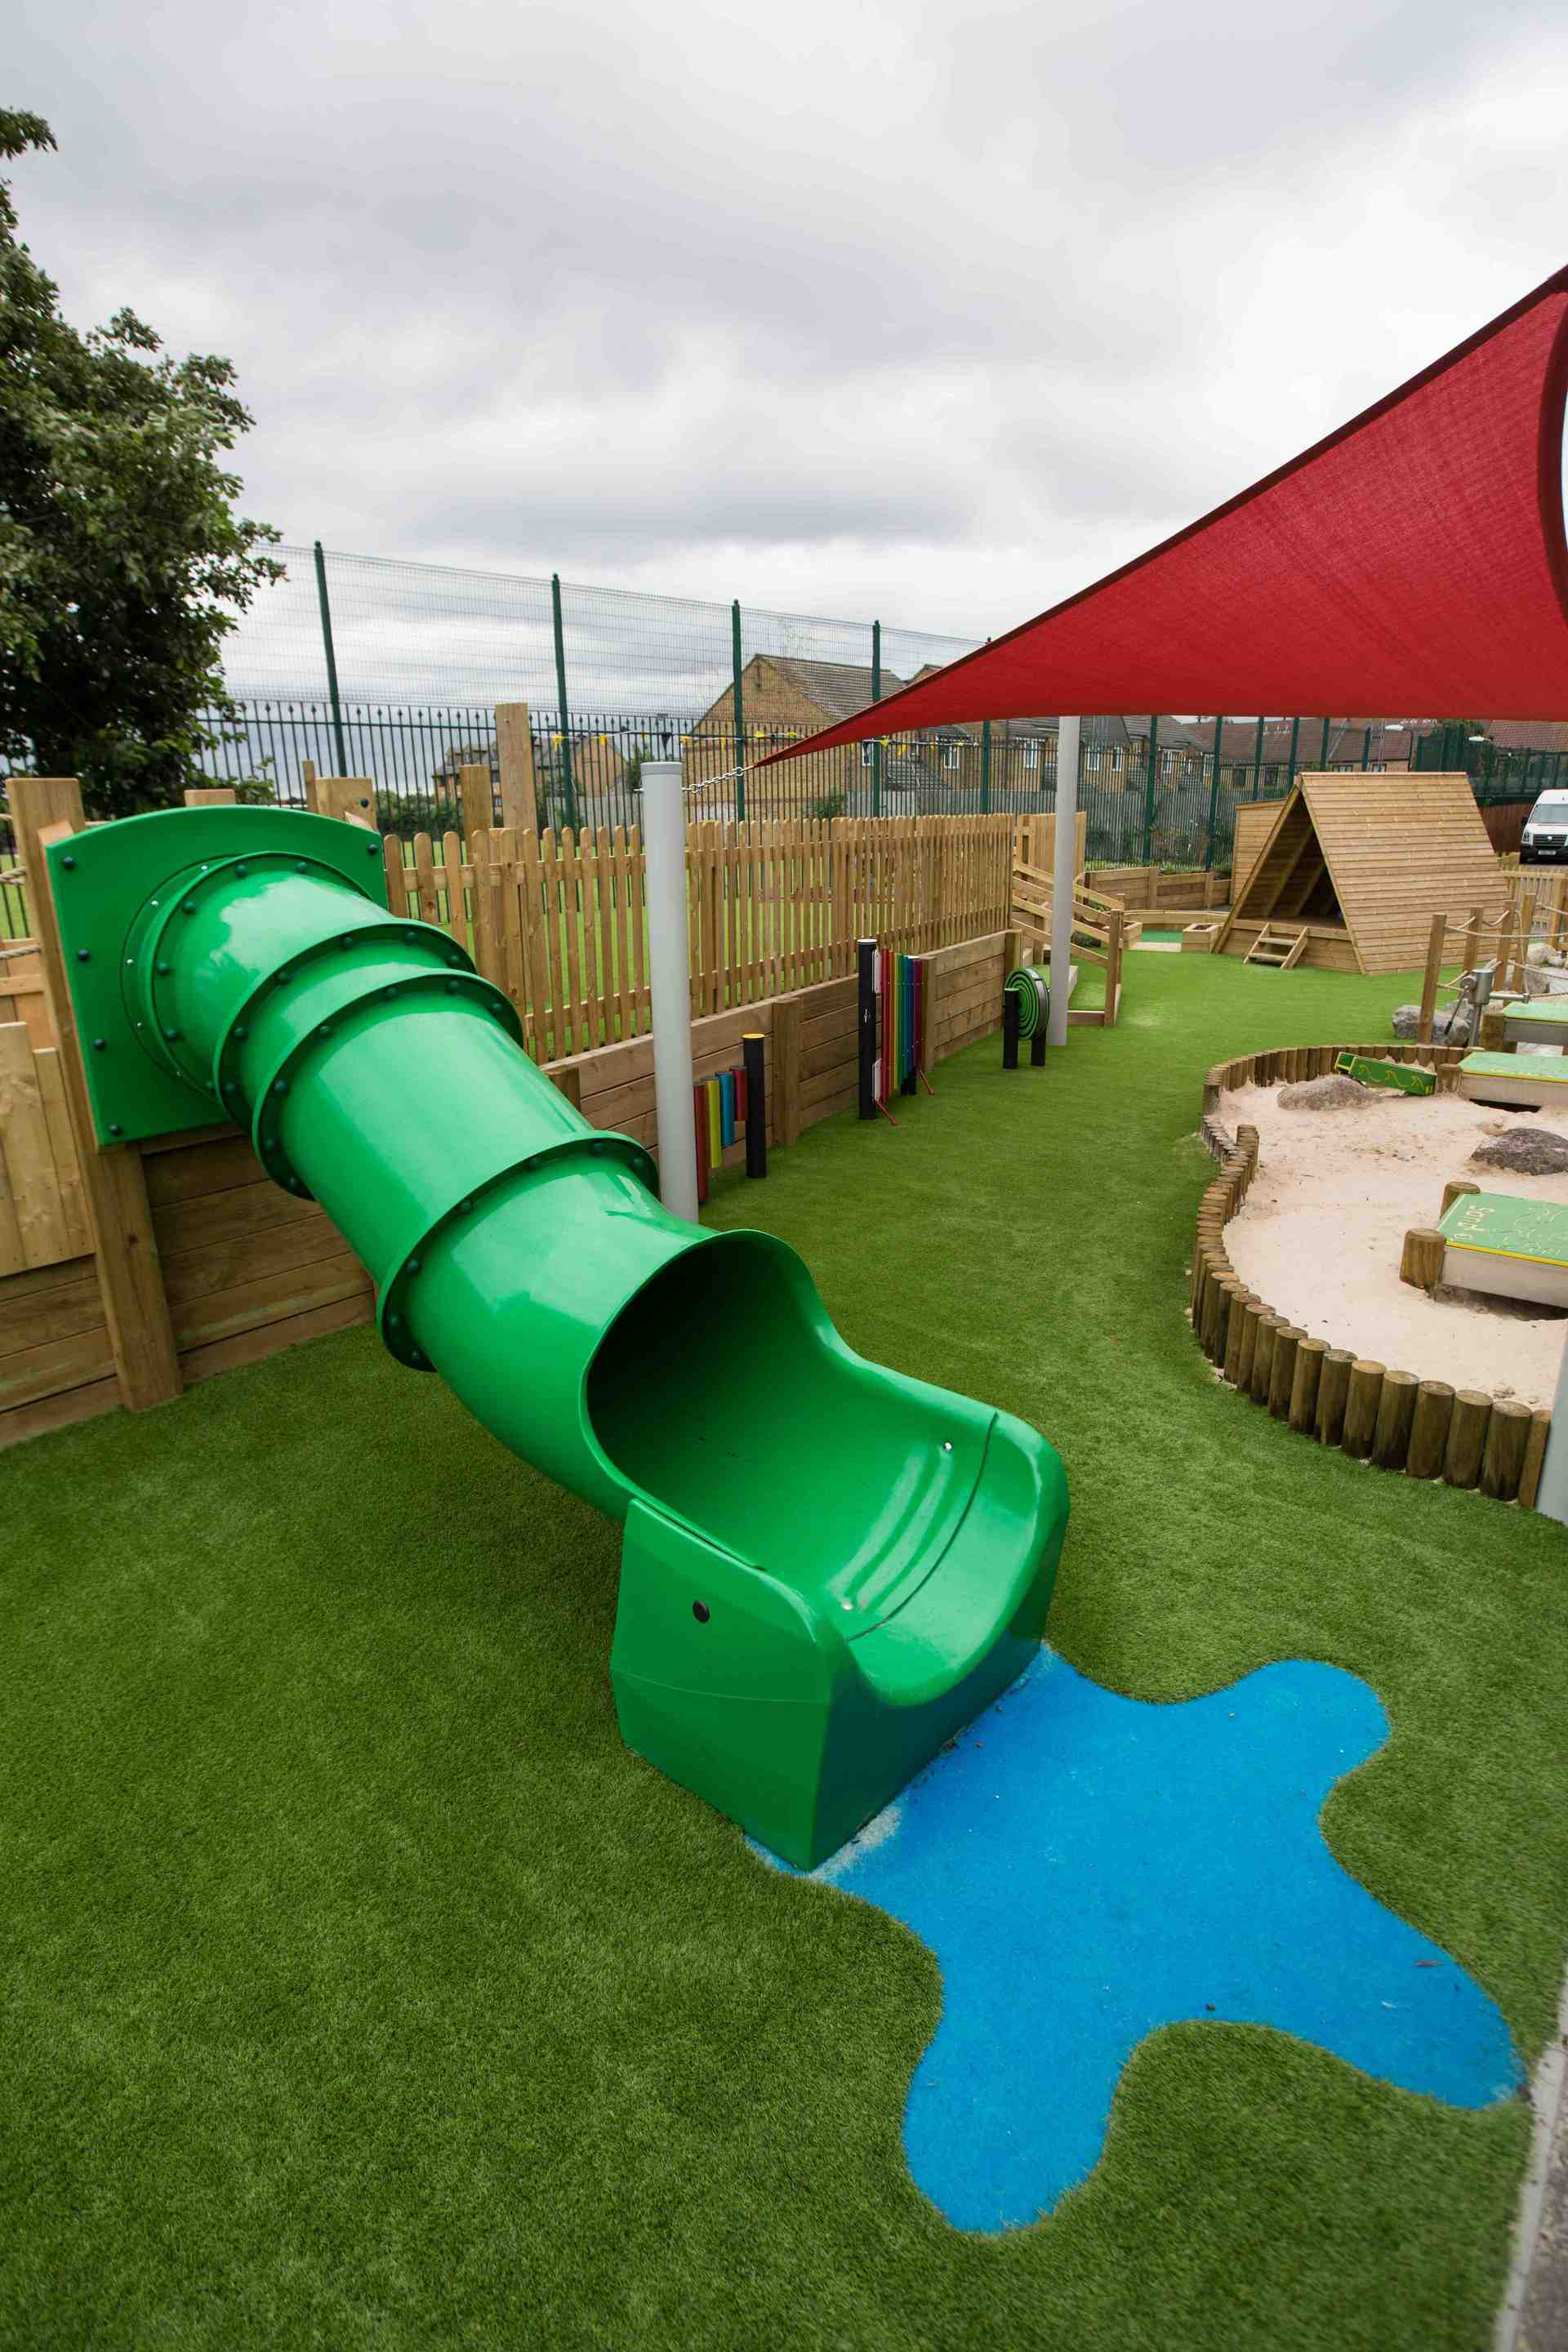 School Playgrounds | Playground Equipment | South East